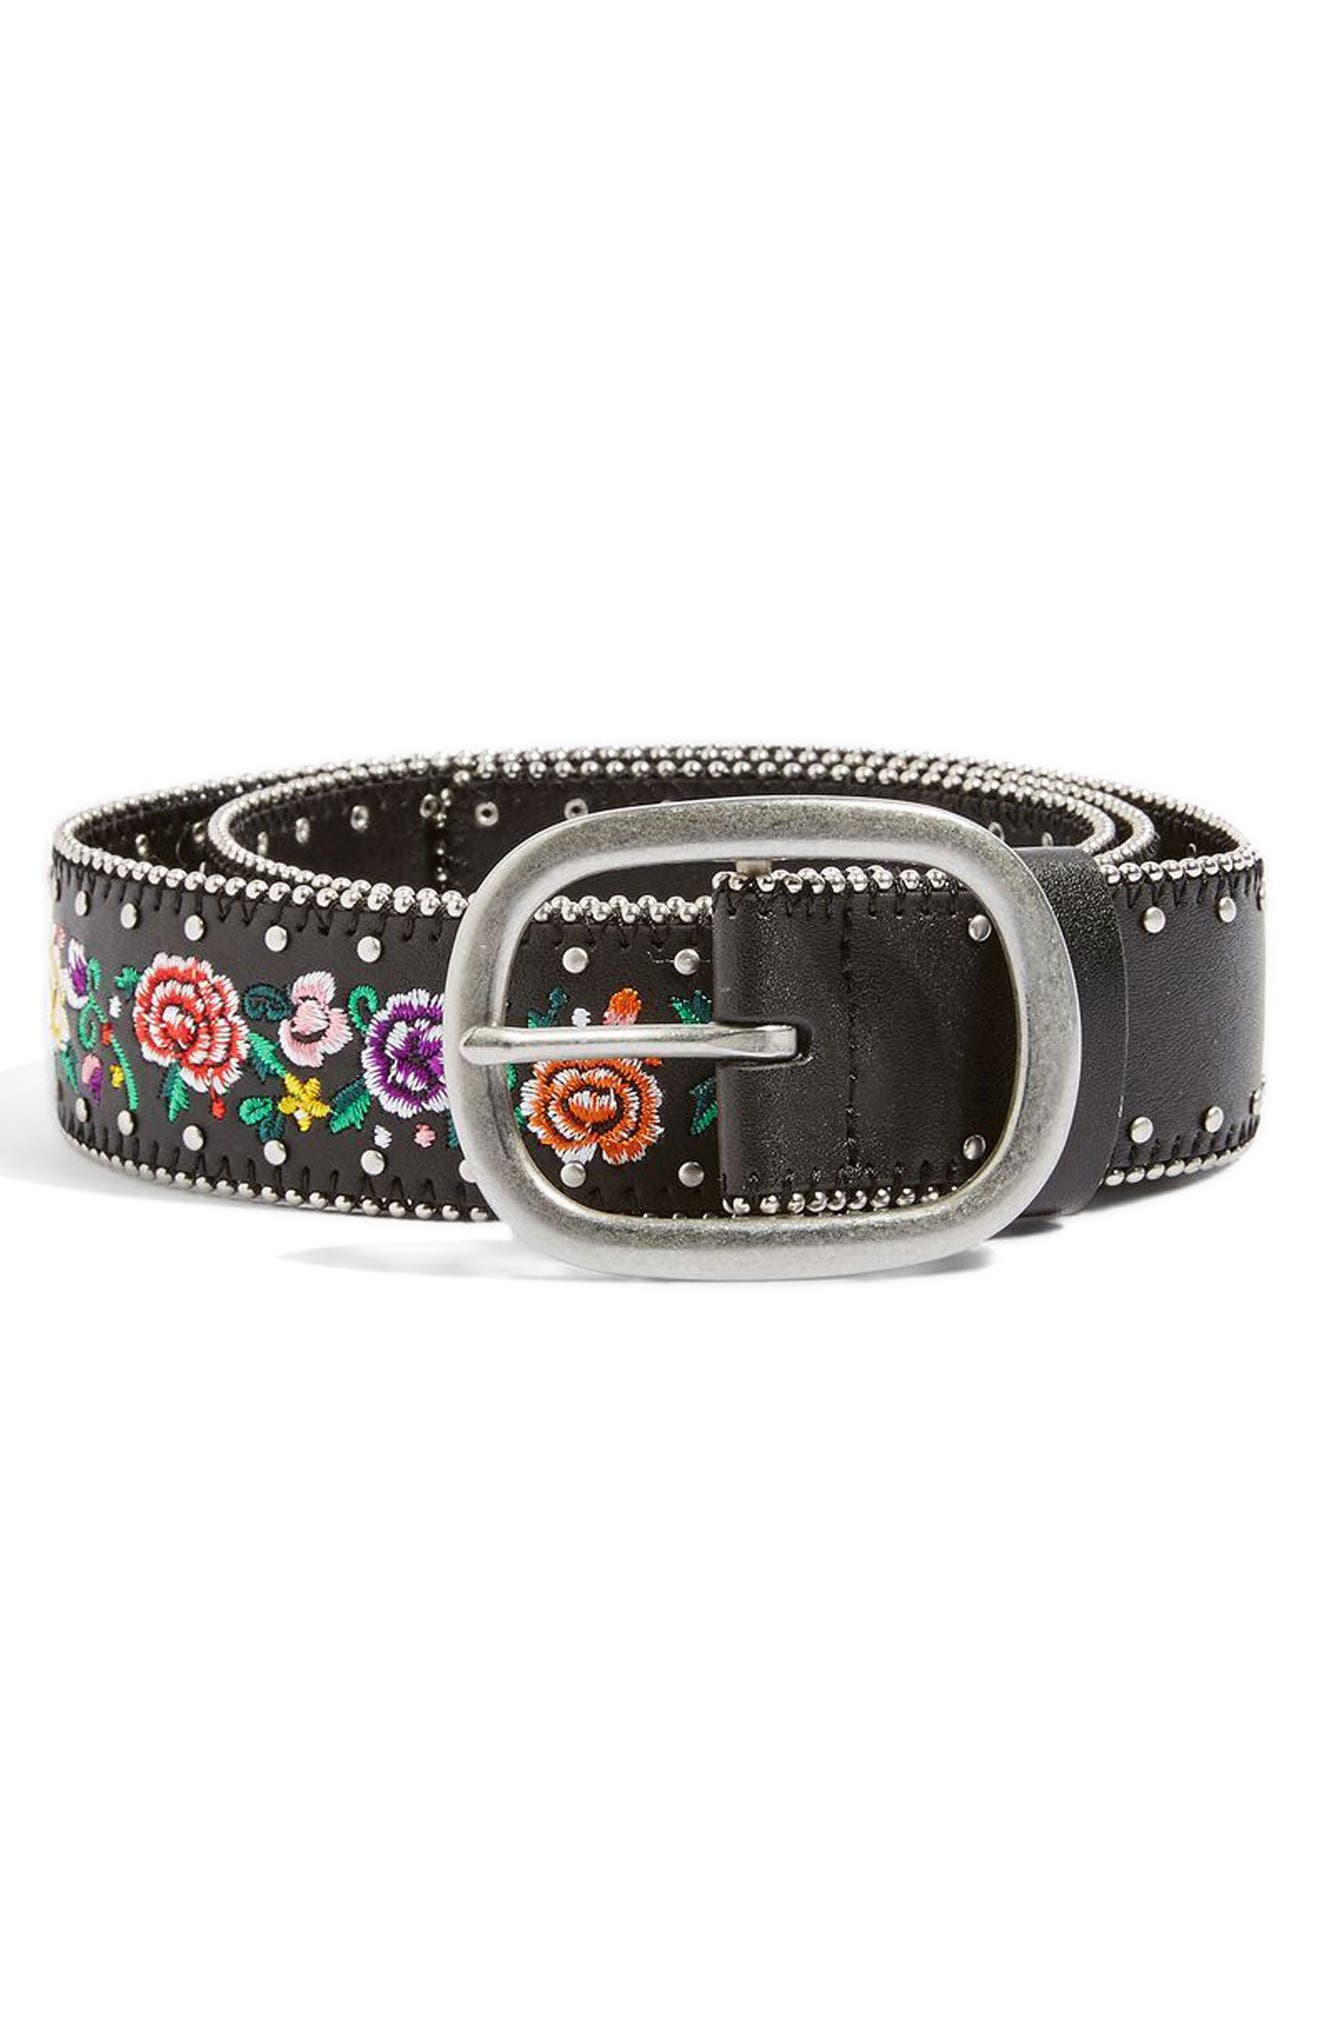 Main Image - Topshop Chain Trim Floral Embroidered Belt